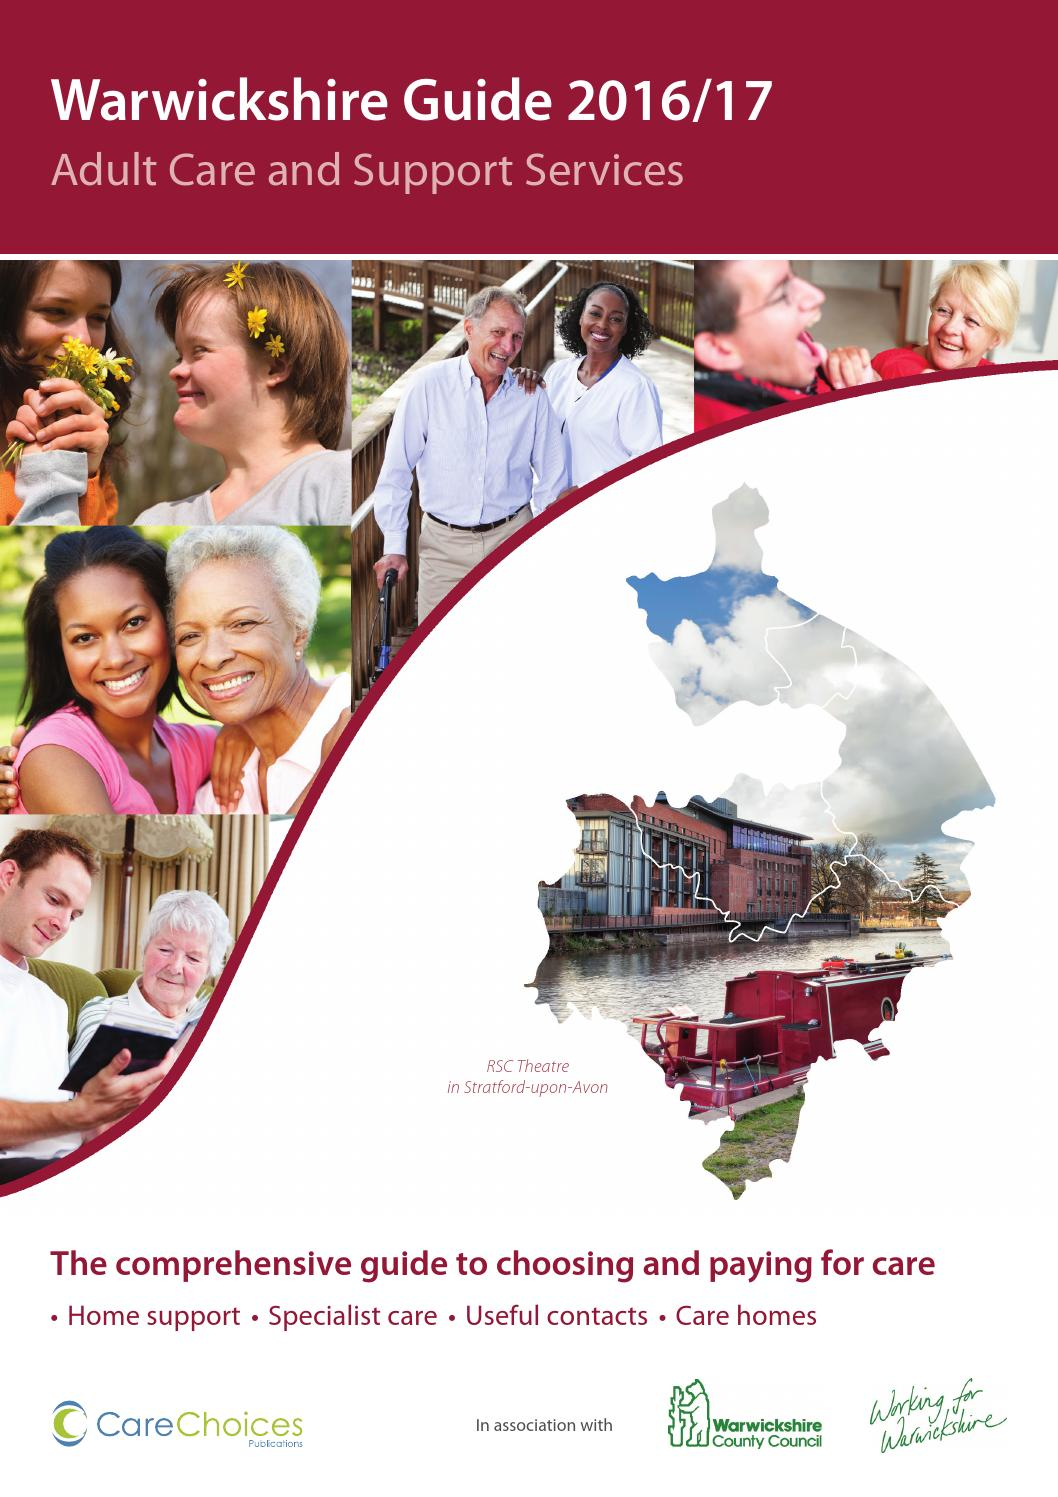 Warwickshire guide 2016 17 adult care and support services by care choices ltd issuu